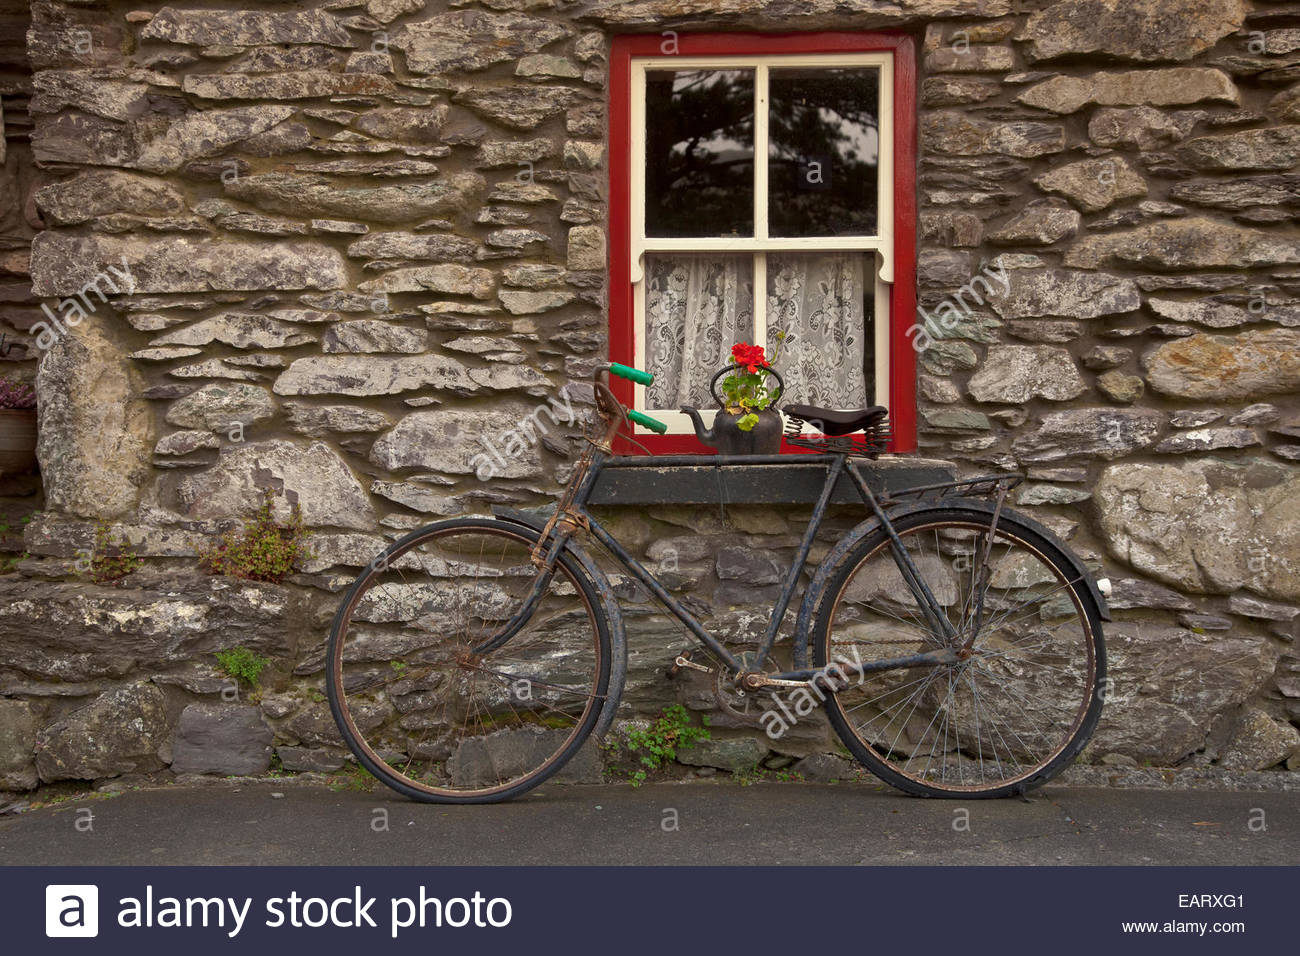 An old bicycle rests against an old stone house. - Stock Image